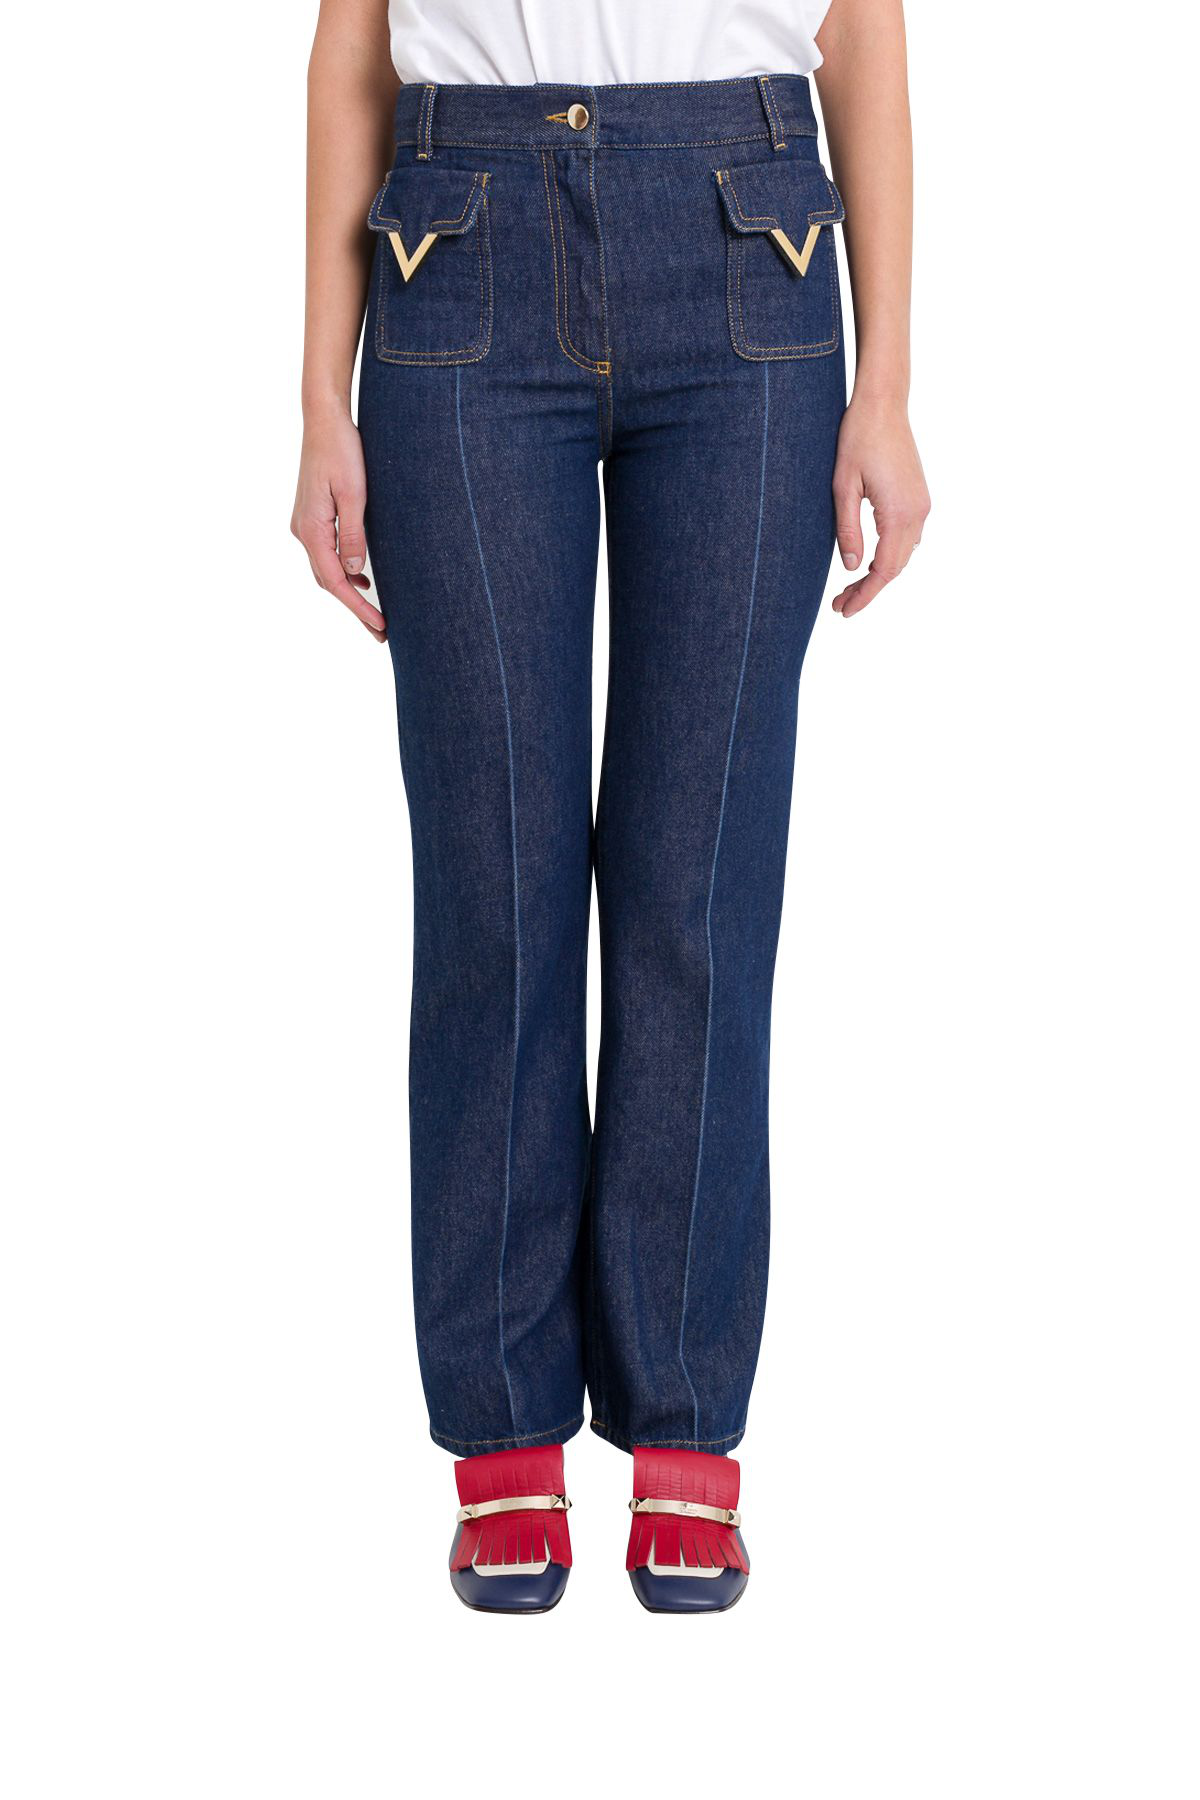 f53073f6df Valentino Patch Pocket V-Hardware Ankle Jeans In Indigo